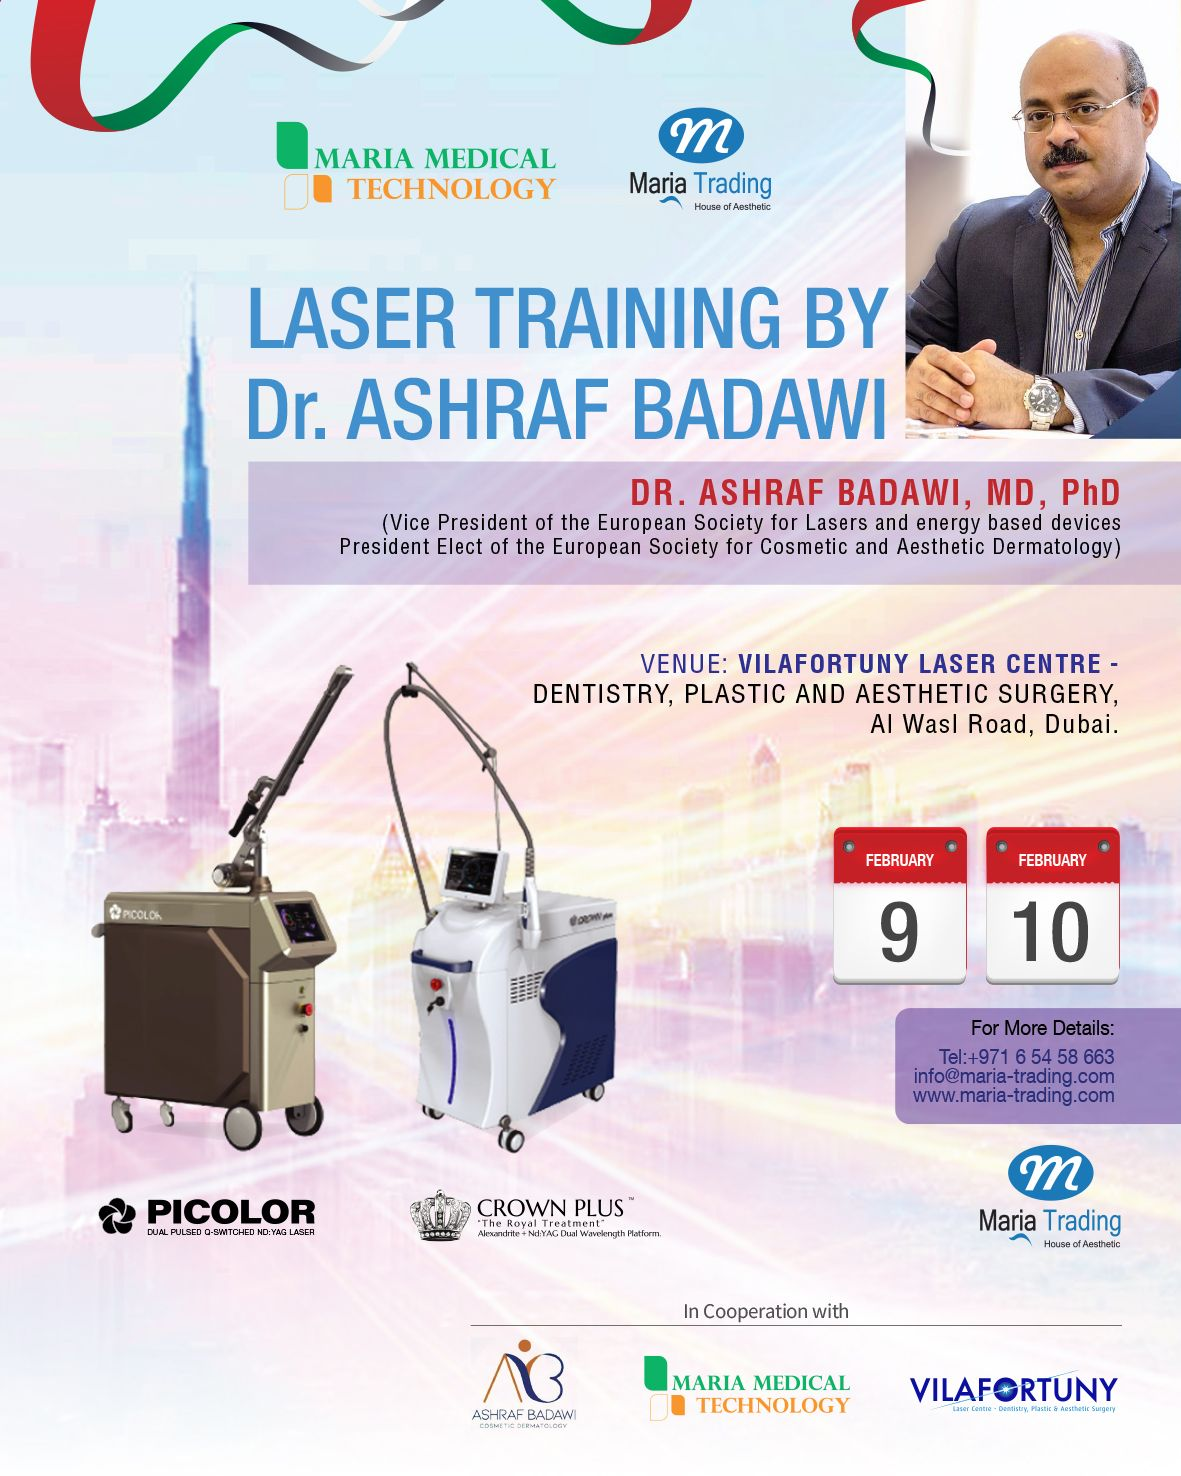 Maria Trading | House of Aesthetics Laser Training by Dr